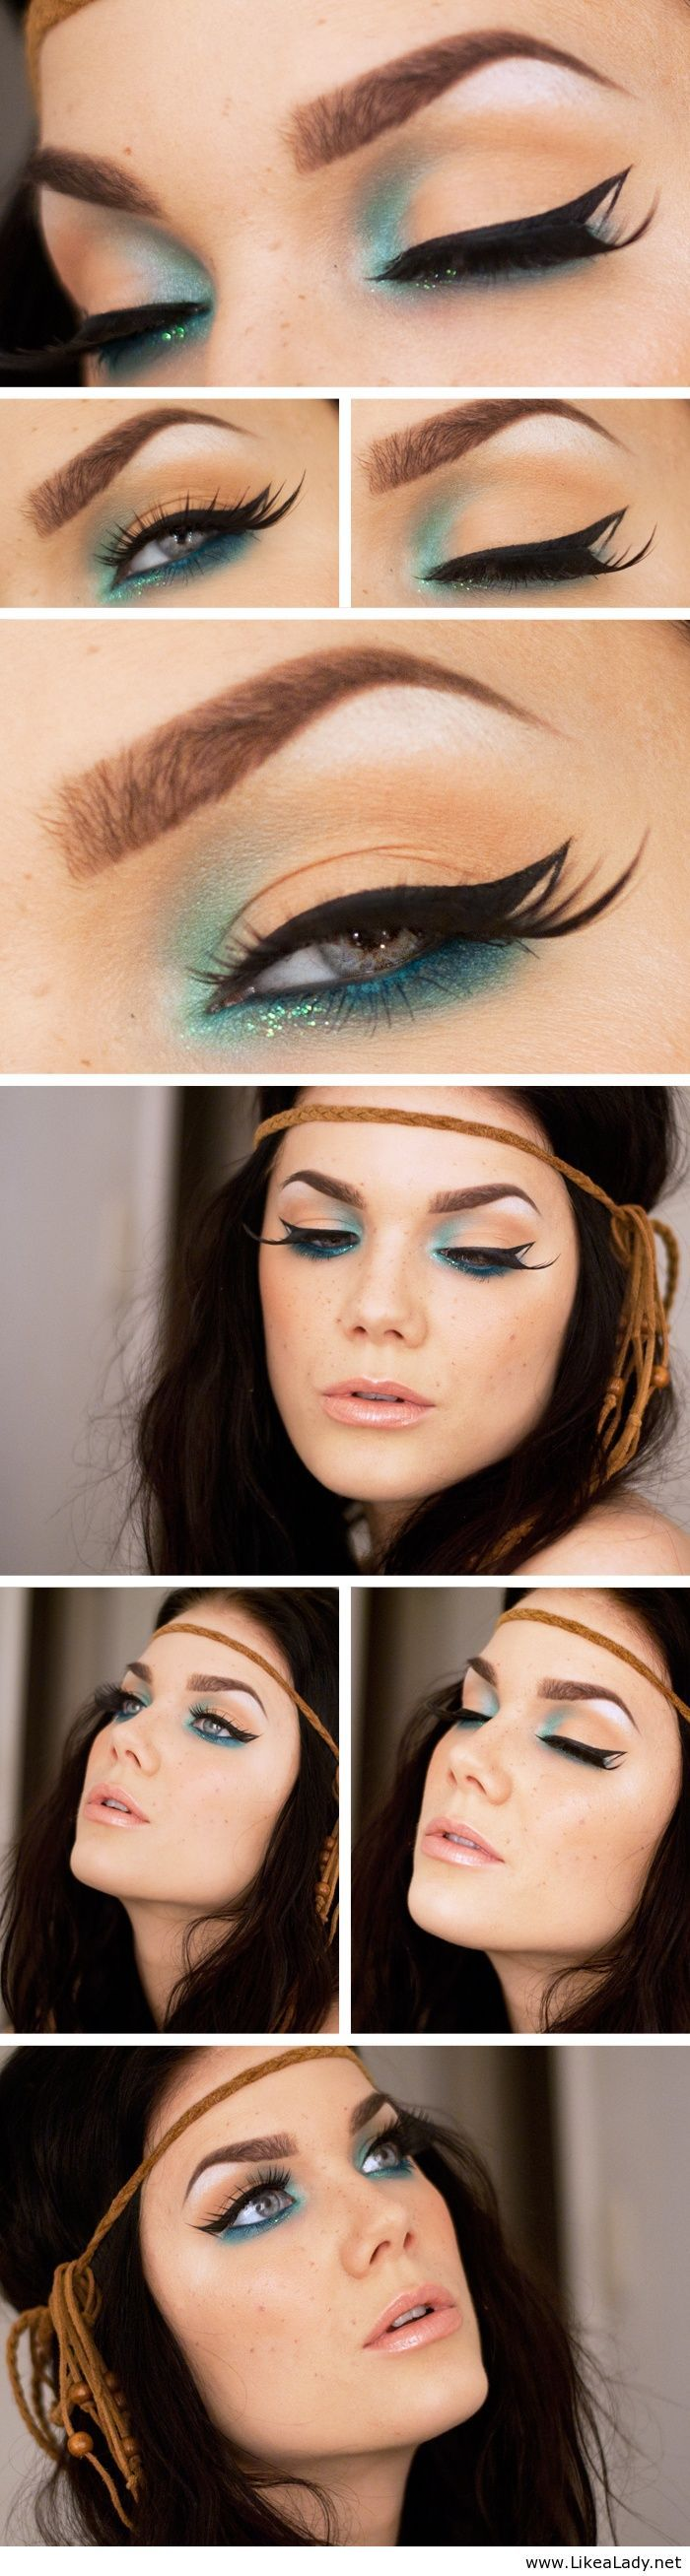 79 Best Rave Images On Pinterest Mermaids Hair Dos And Artistic Softlens Diva Queen One Layer With Clear Vision How To Pull Your Eyes The Center Make Them Look Closer Together